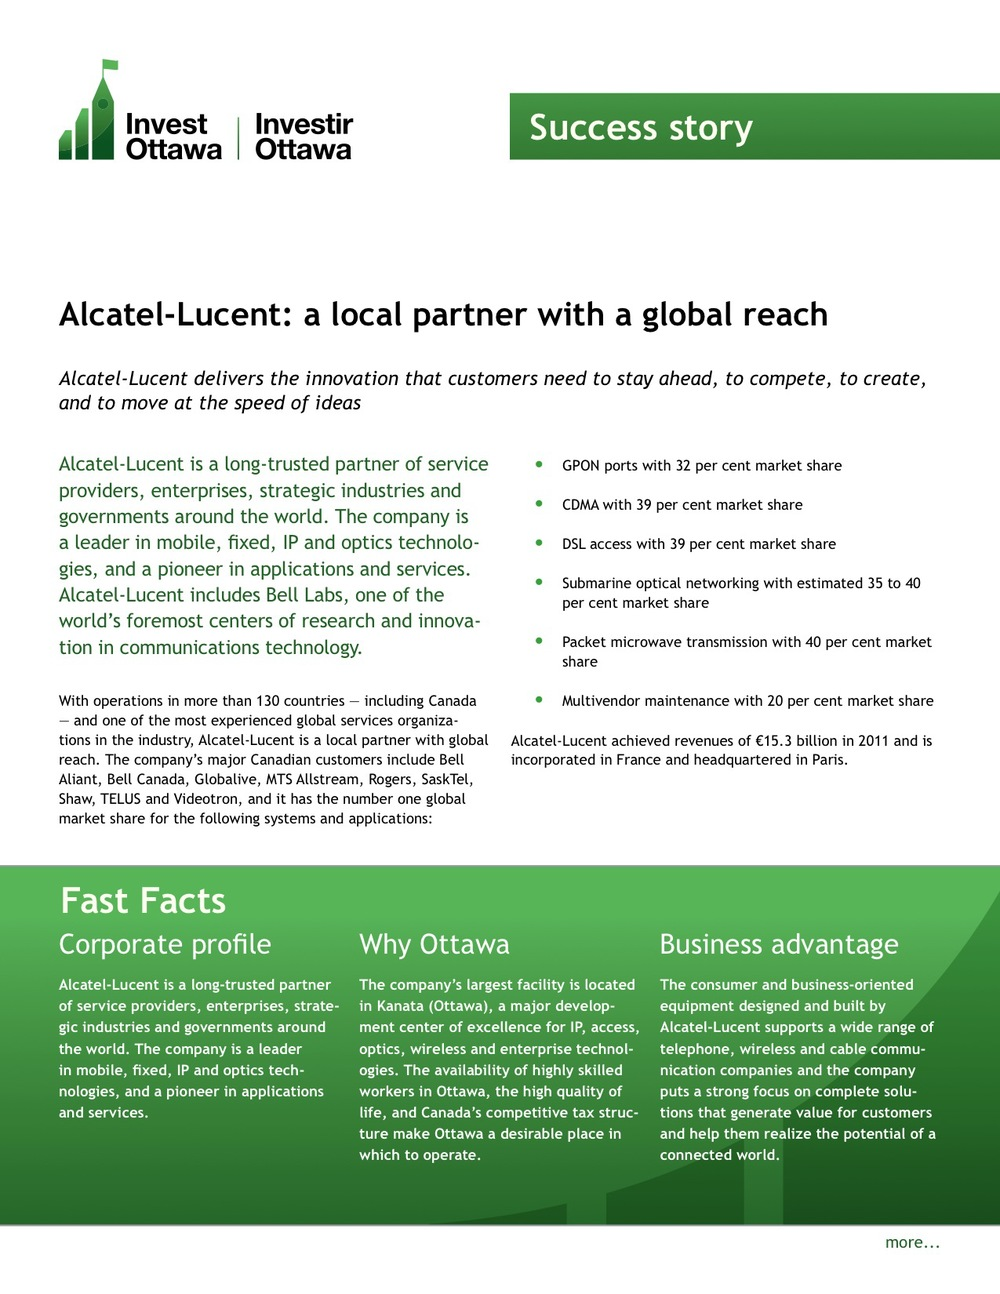 InvestOttawa-Alcatel-Lucent-VIEW-page1.jpg